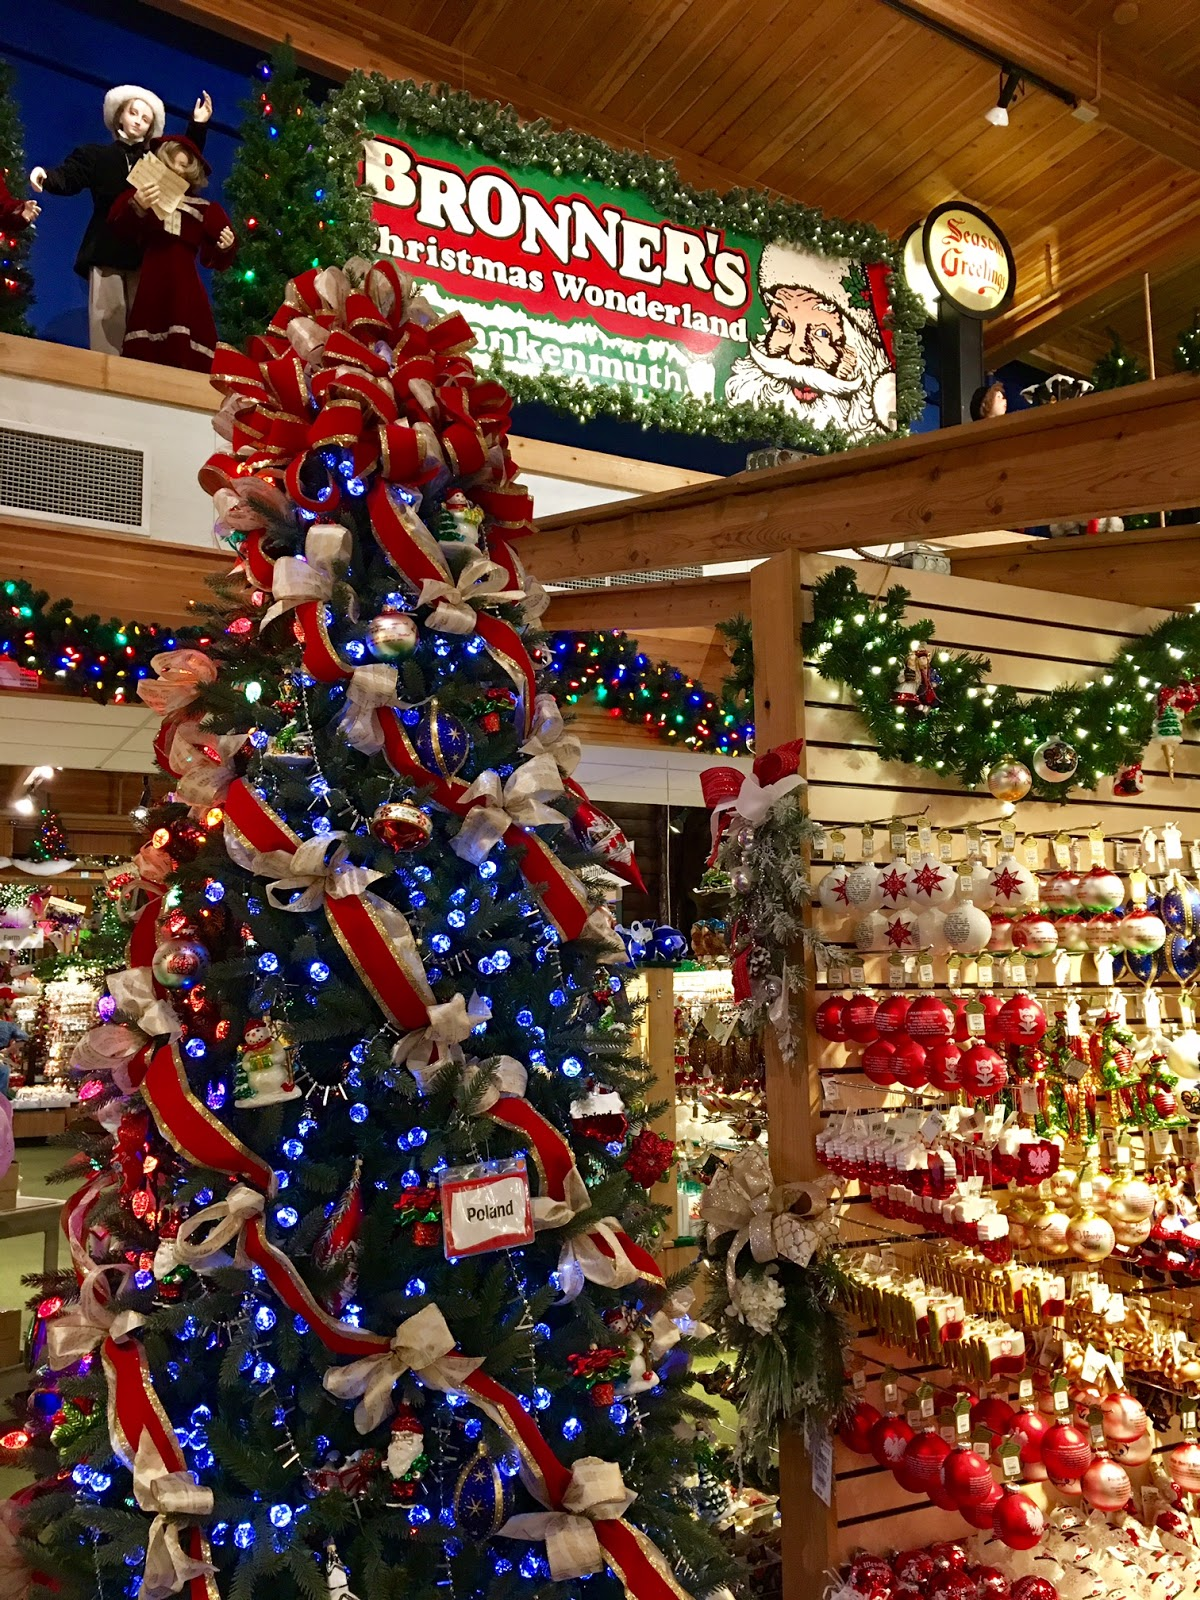 where is it the worlds largest christmas store is called bronners christmas wonderland and is located in frankenmuth michigan